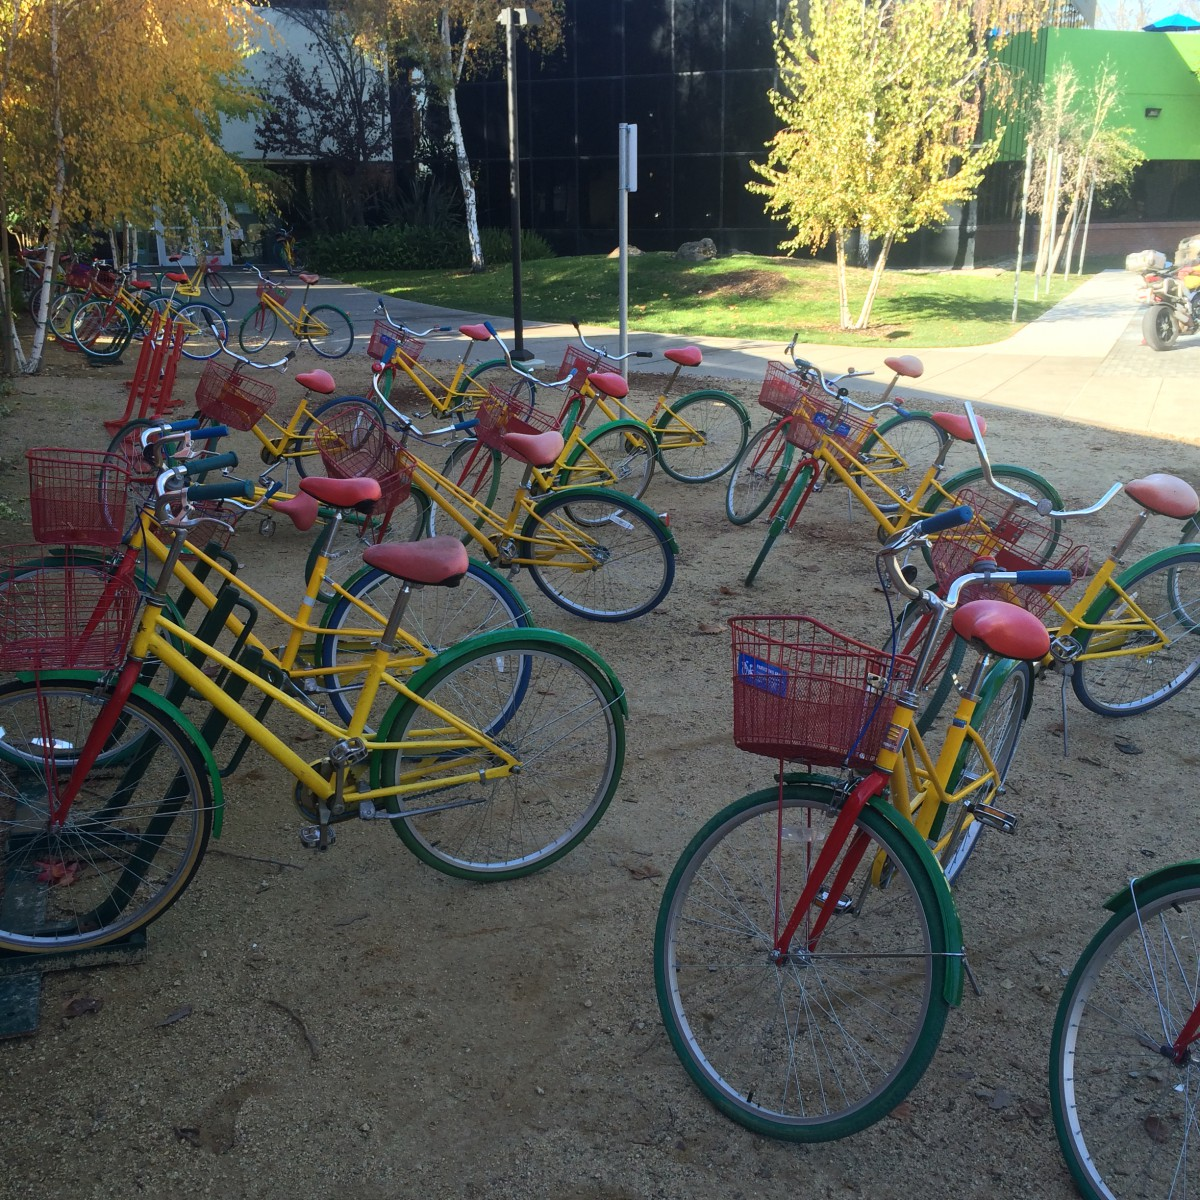 Shared bicycles at Google